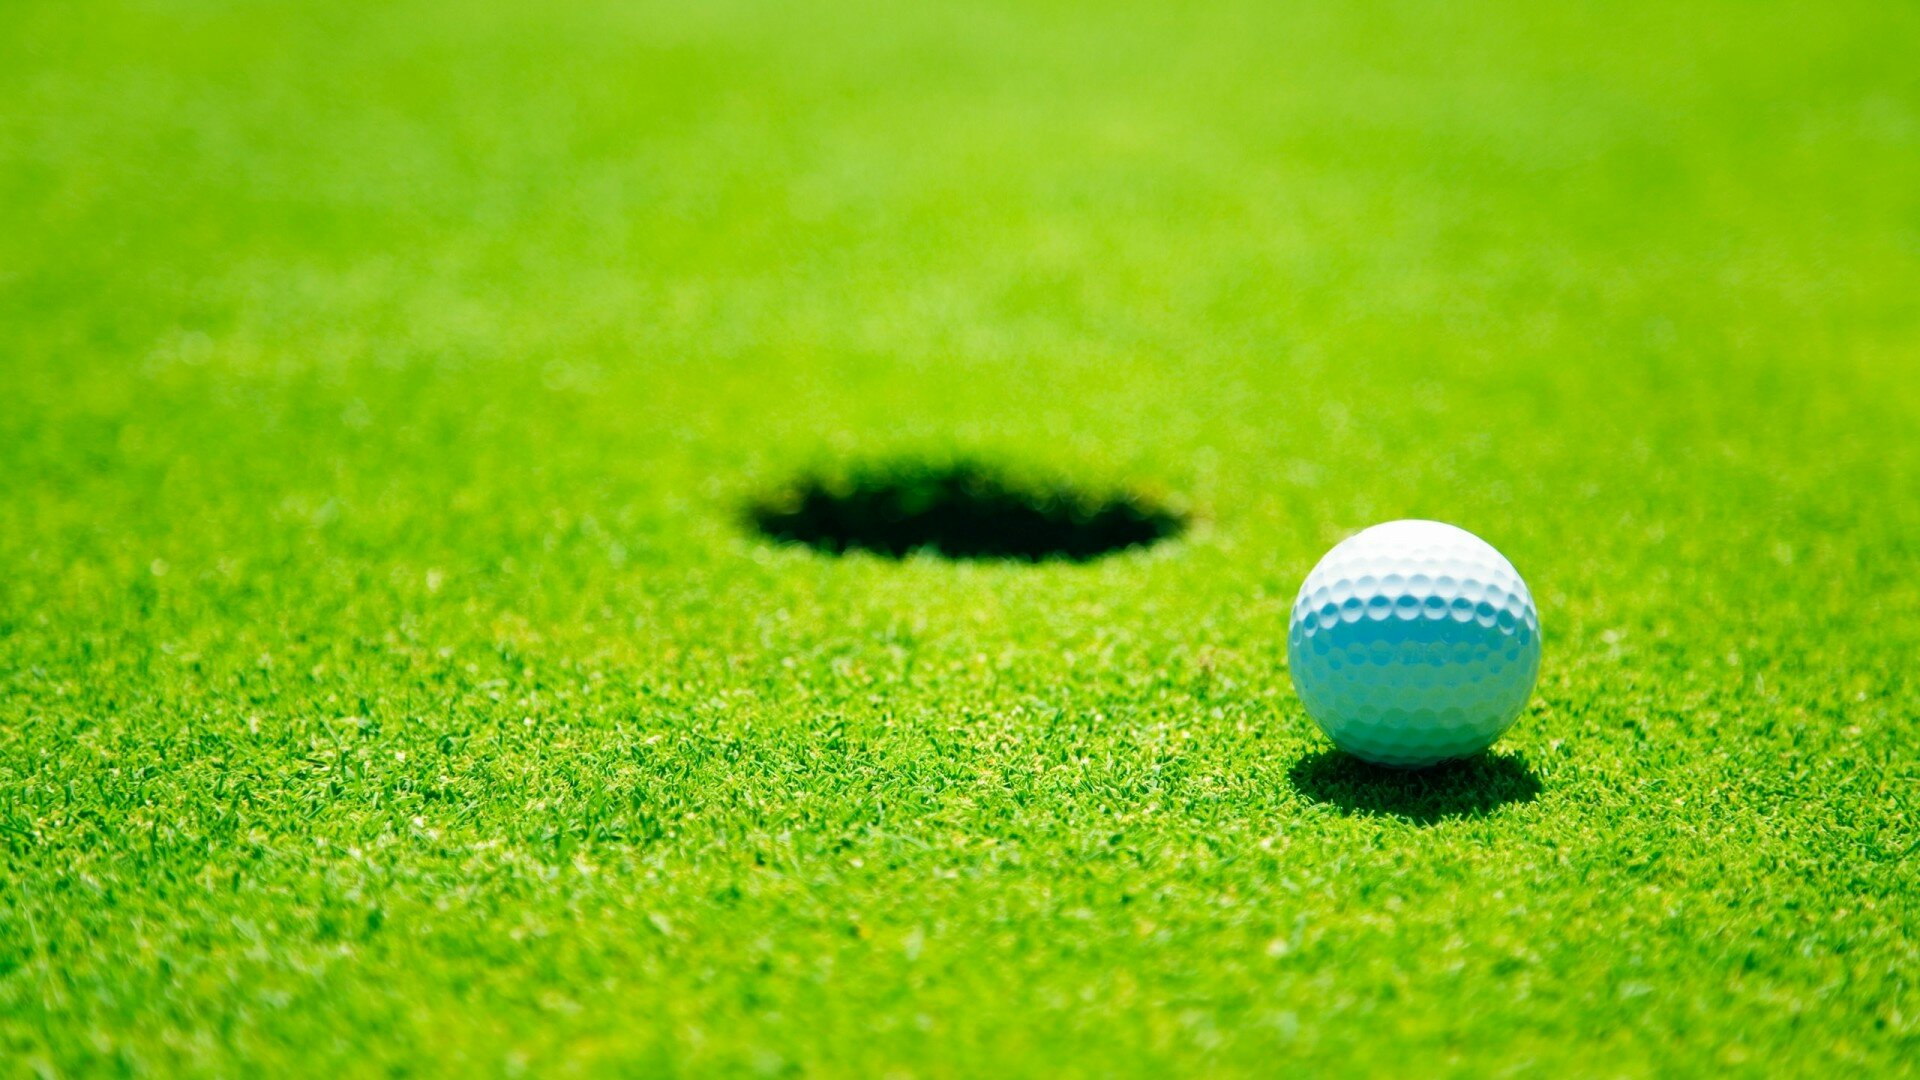 Golf-Club-sports-desktop-golf-stock-photo-ball-1920x1080